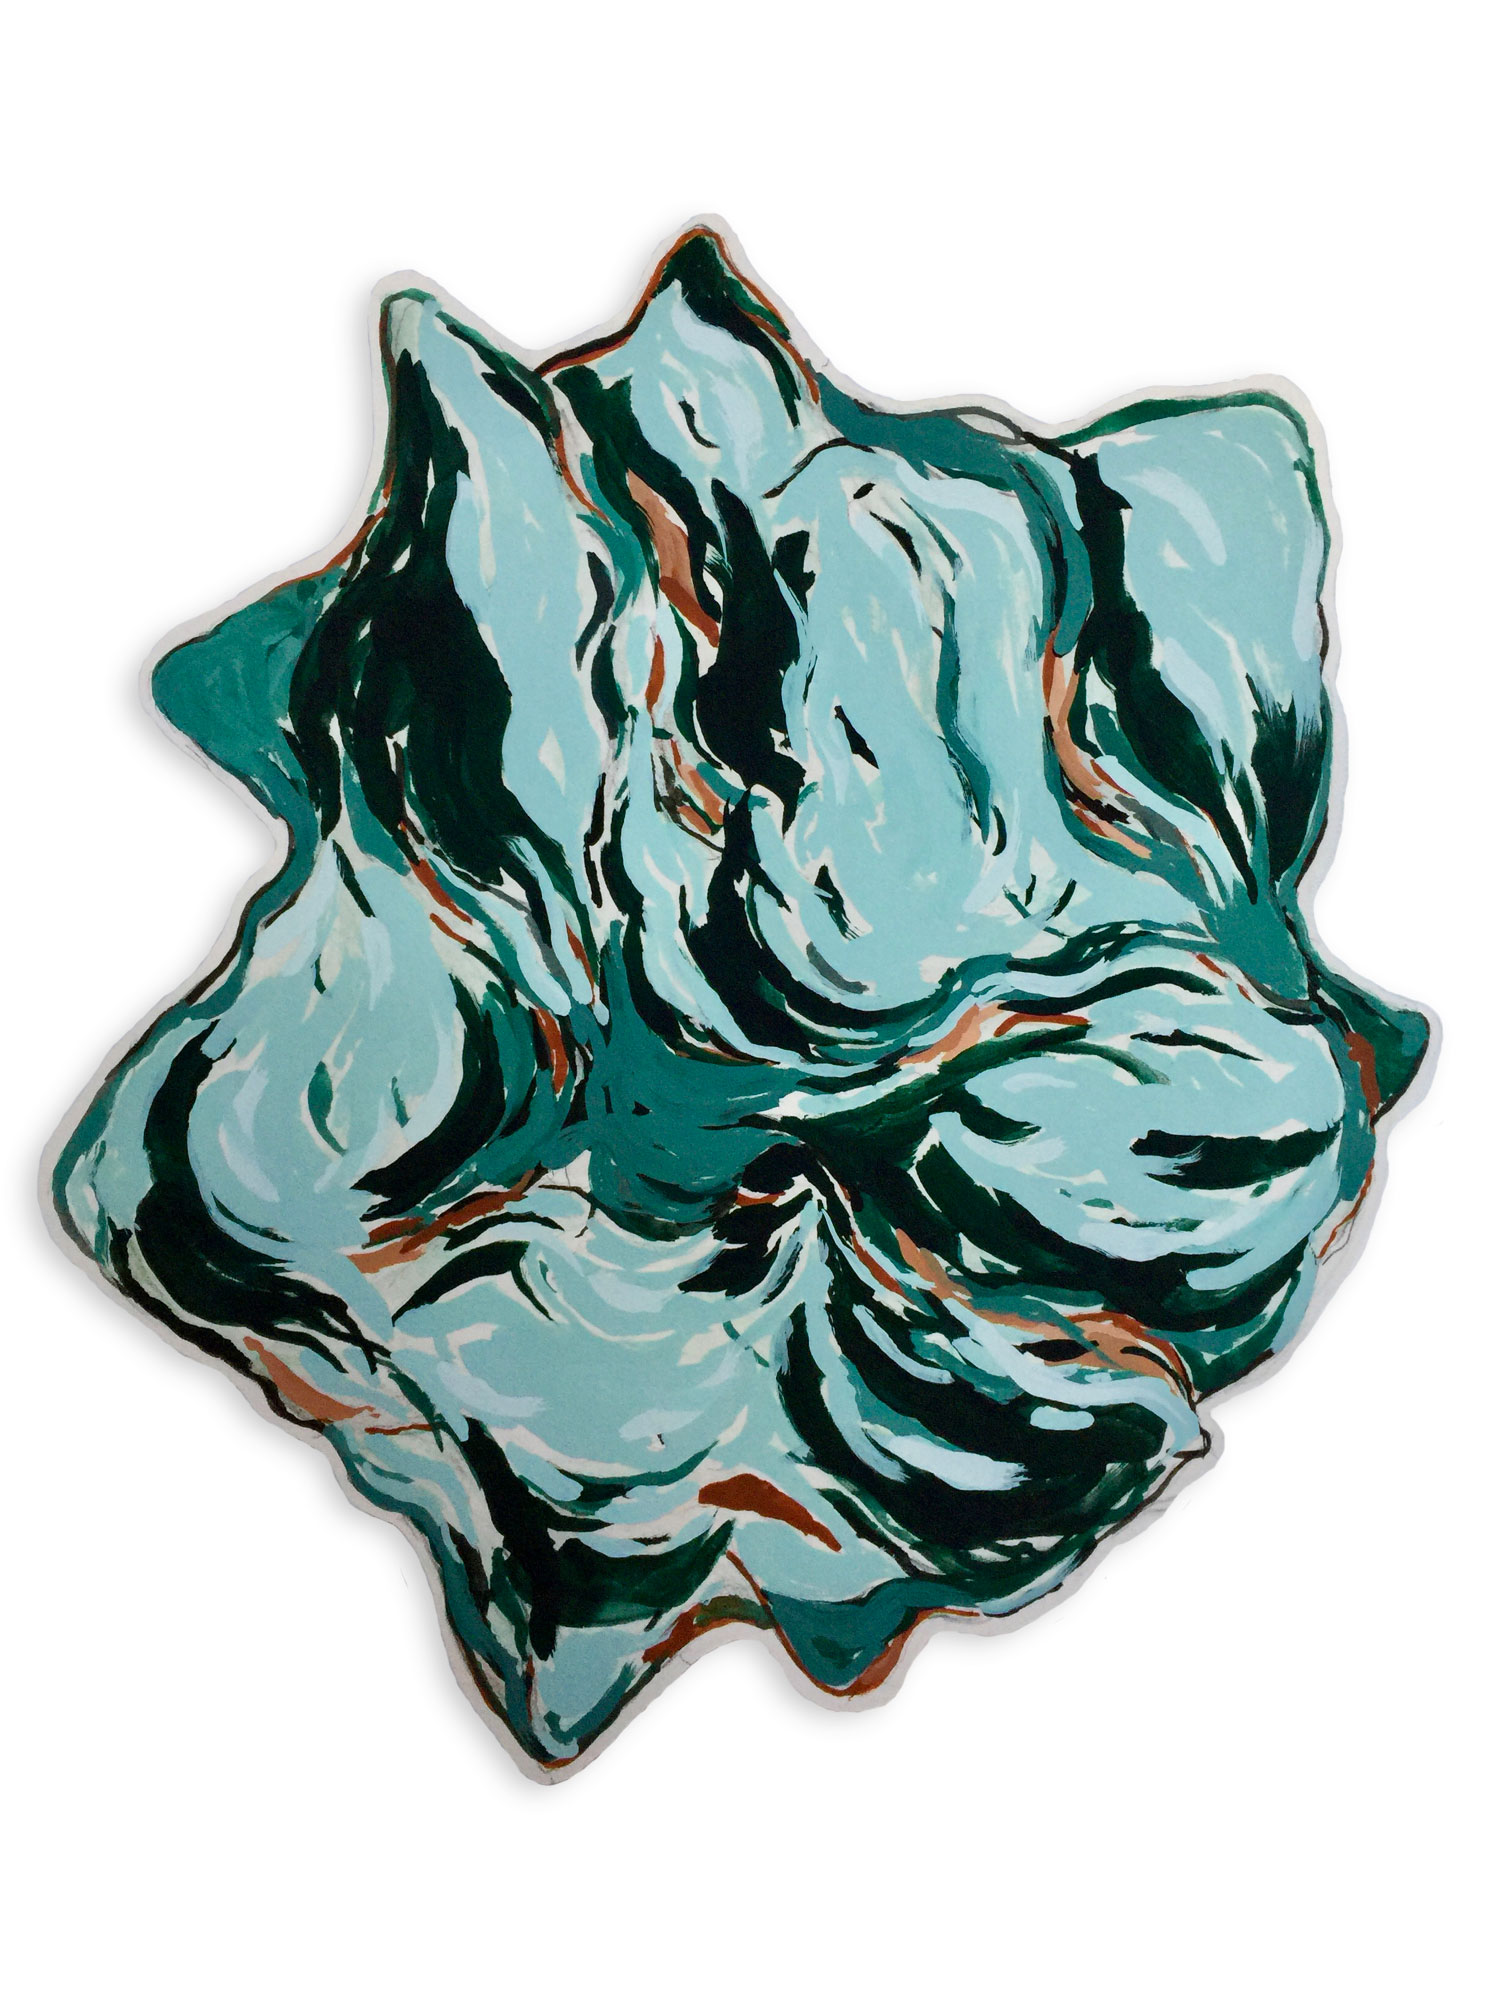 Untitled (Turquoise Conch)